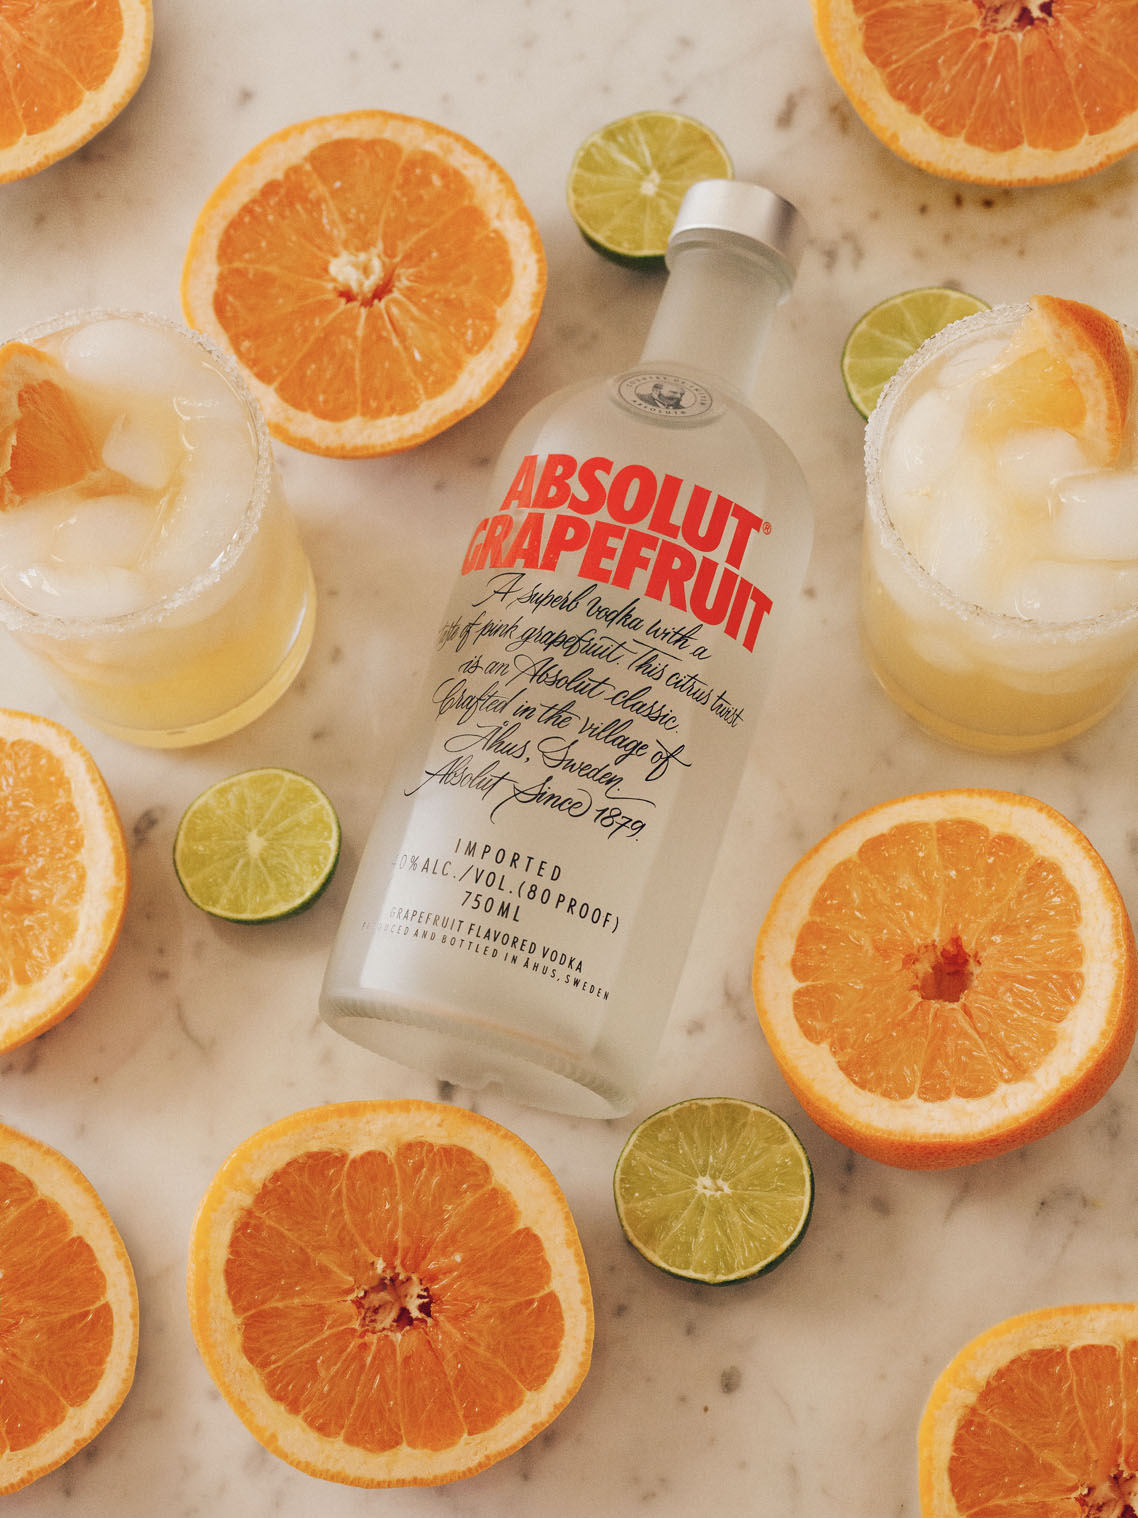 Absolut Vodka   Testing Content Formats at Scale Through Influencers